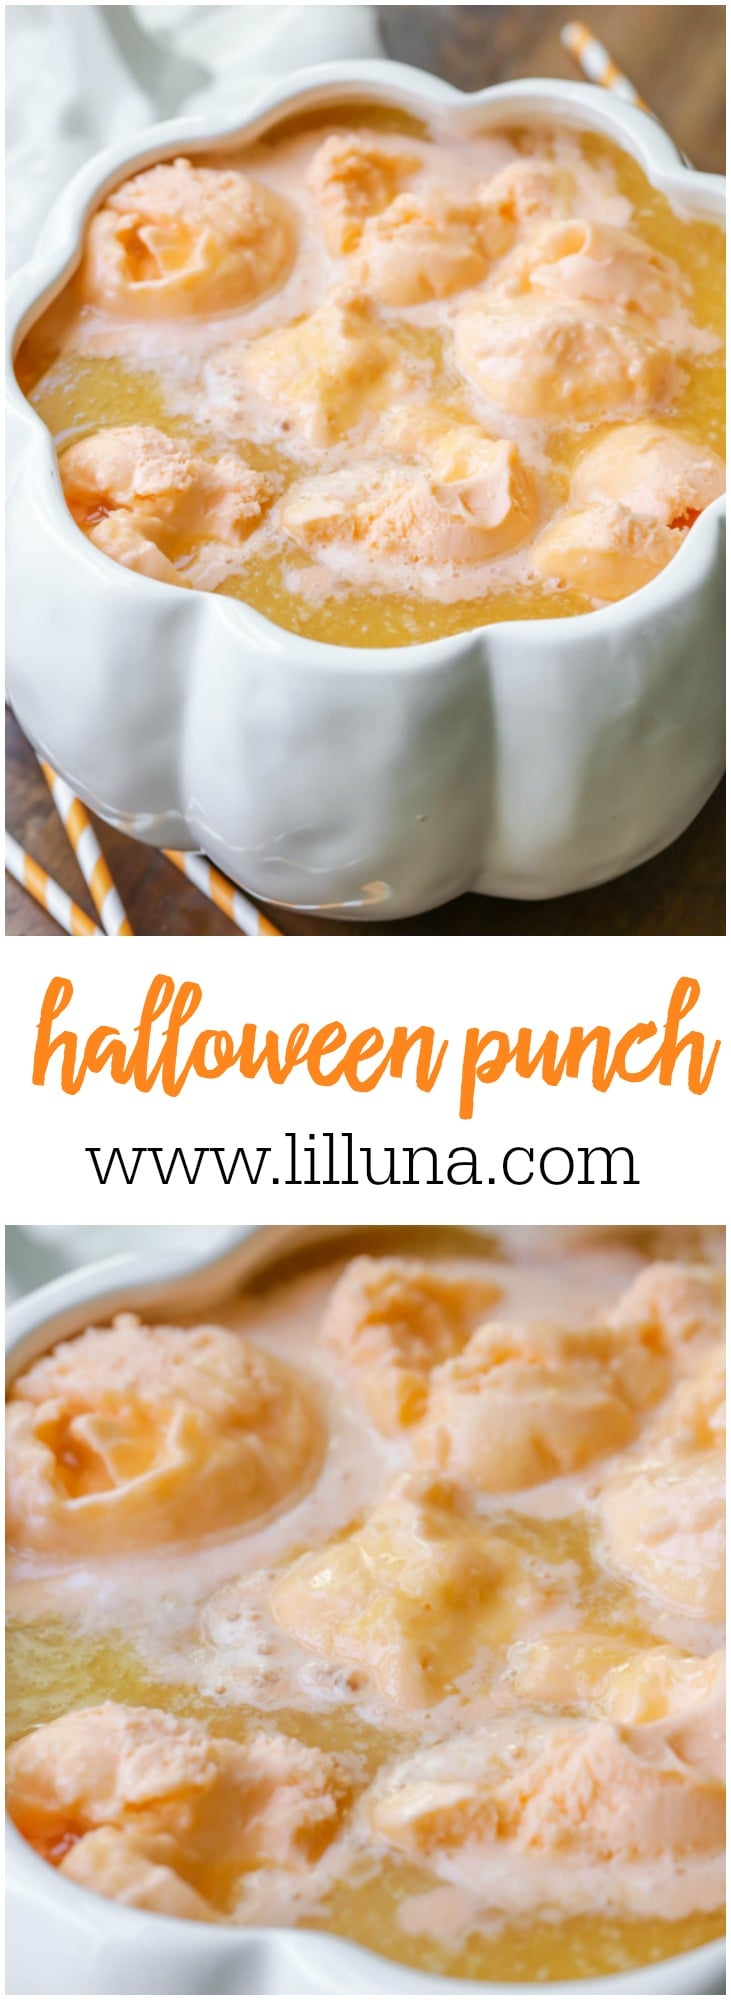 This cool Halloween Punch is made with orange juice, pineapple juice, Sprite, orange gelatin and orange Sherbet - perfect for ALL ages!